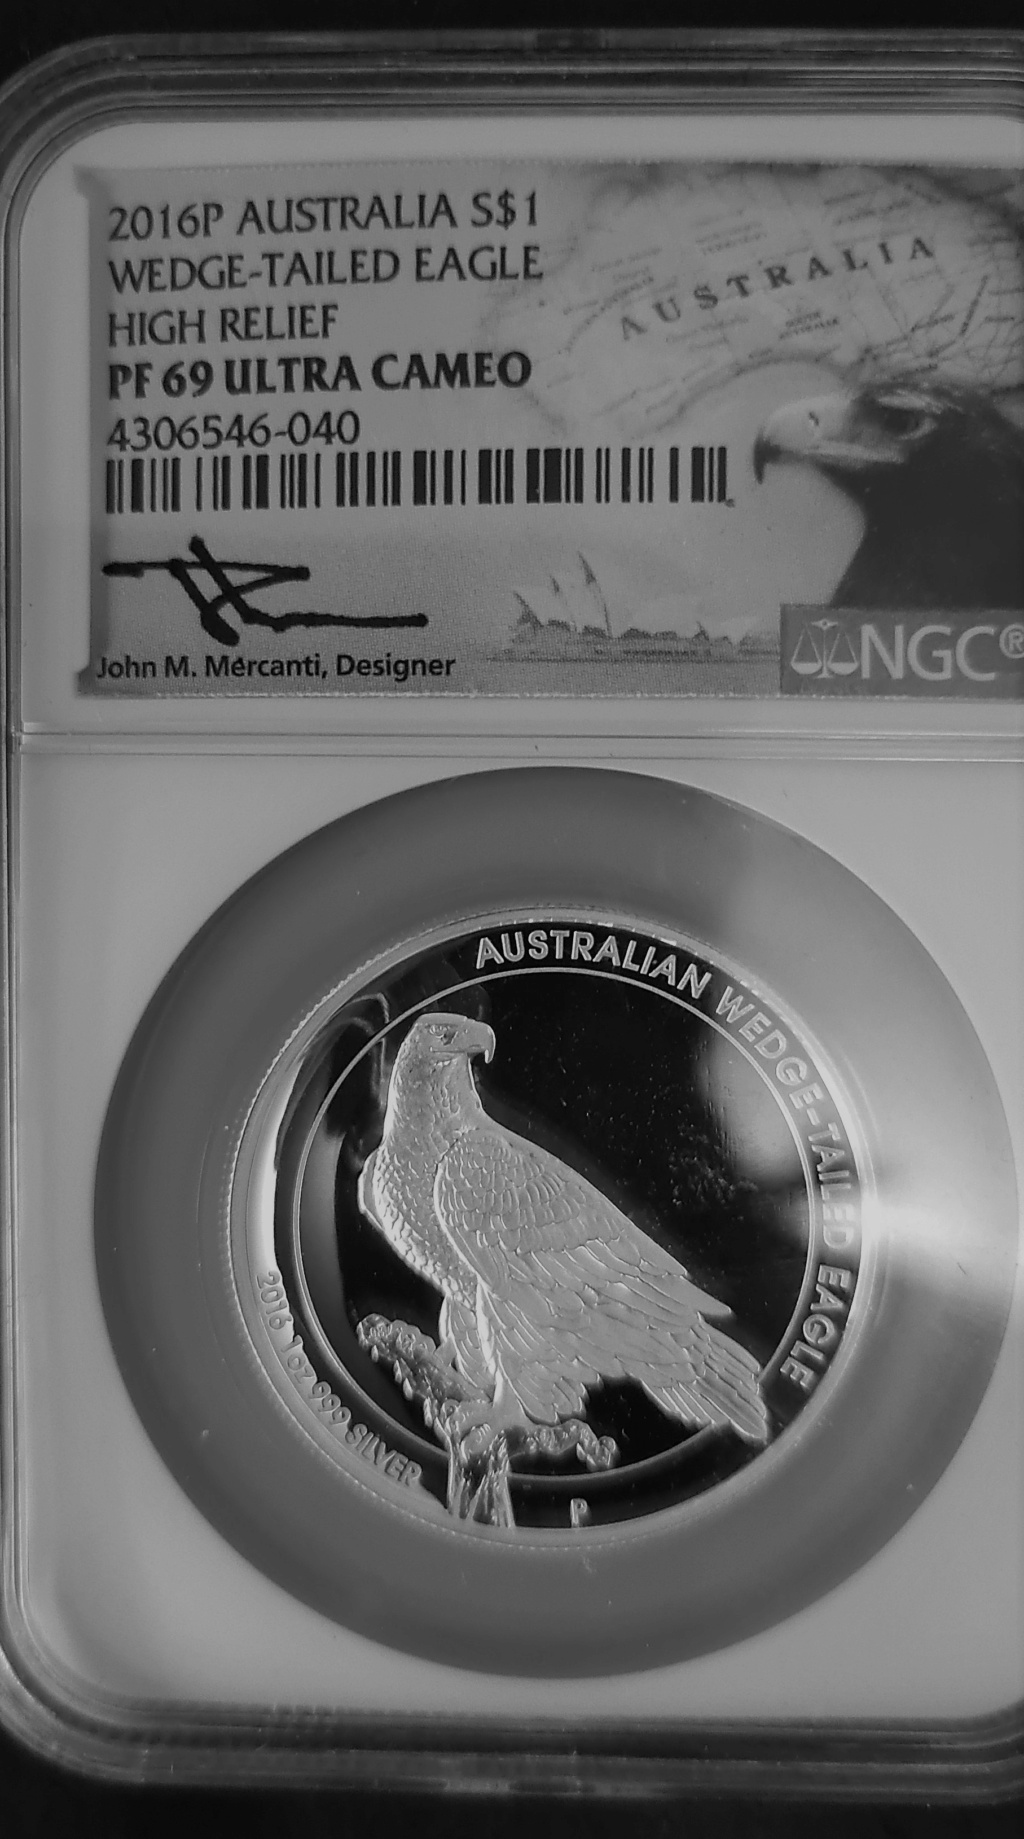 2016 NGC PF69 ULTRA CAMEO WEDGE TAILED EAGLE 1 OZ SILVER COIN high Relief 20211015